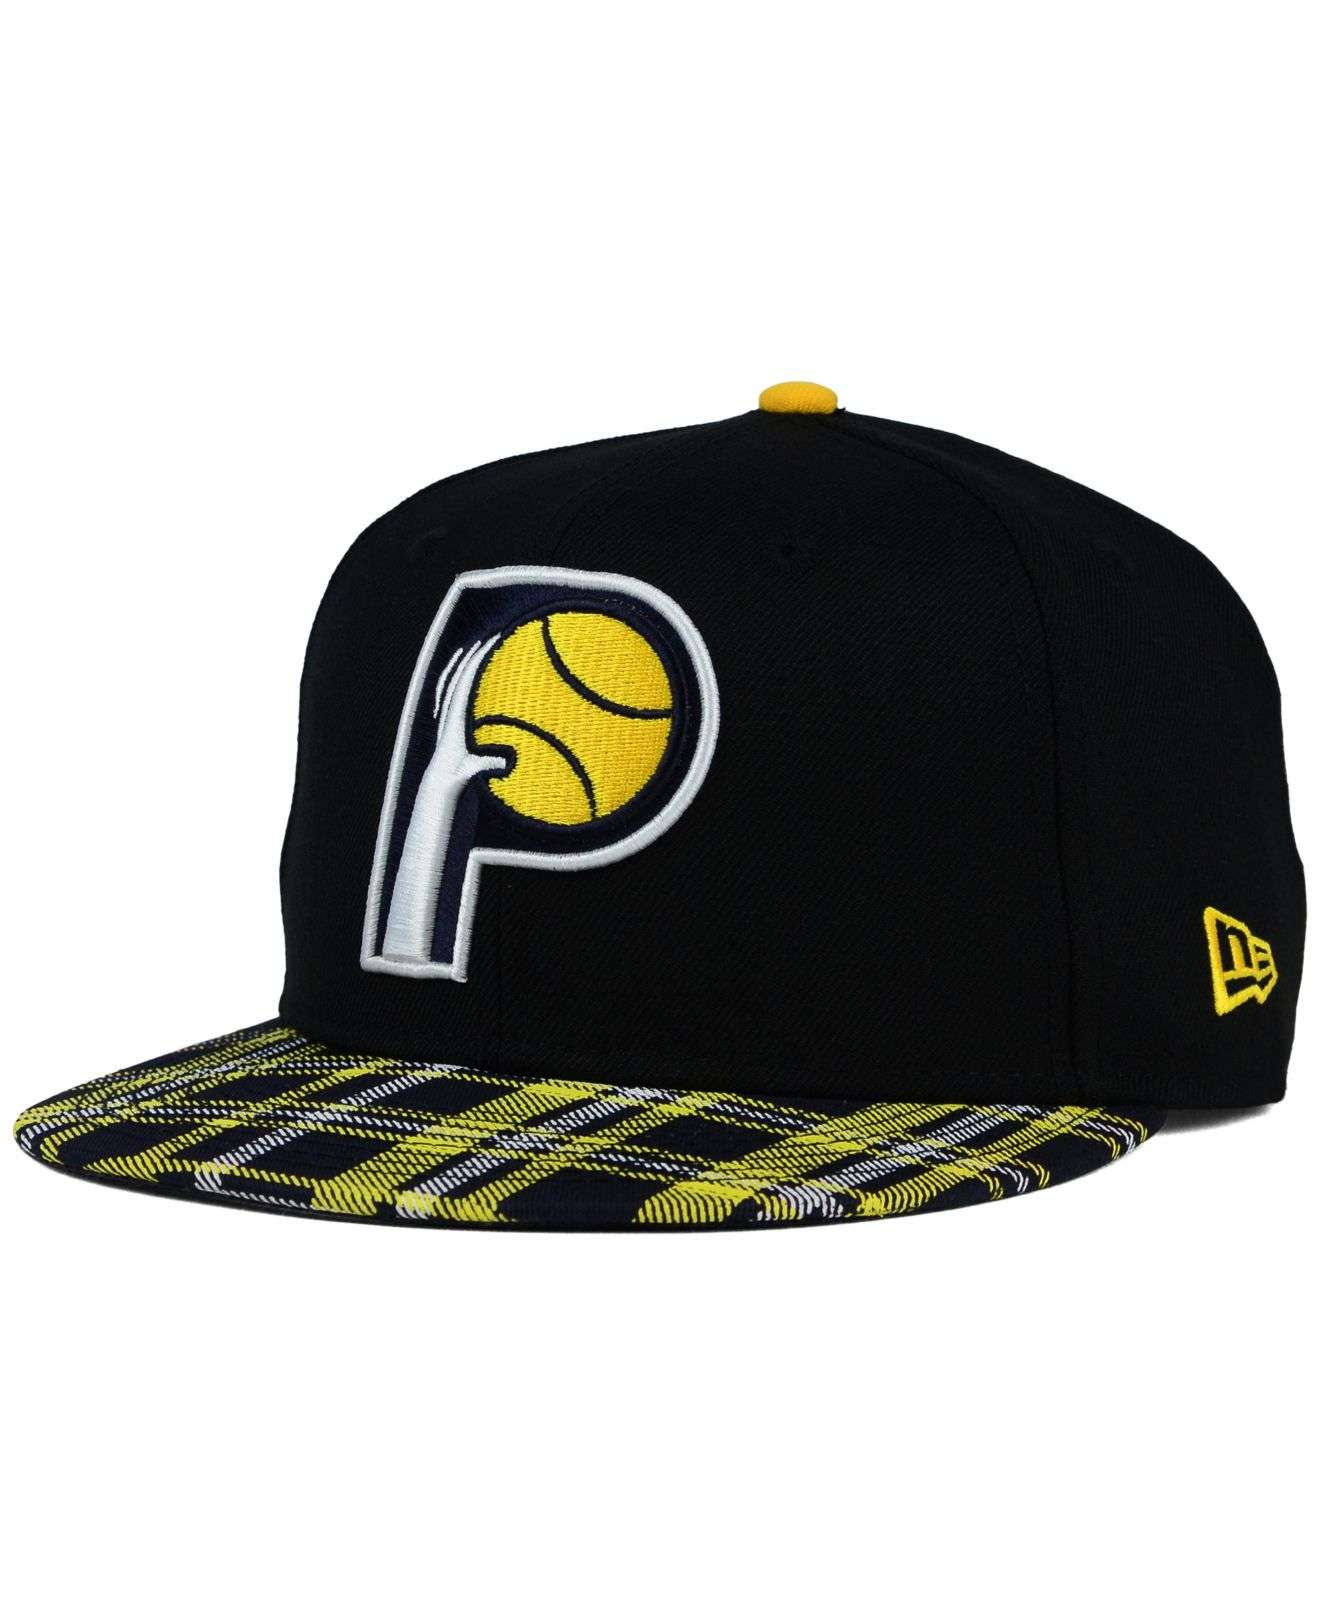 best sneakers a9151 549ee ... shopping lyst ktz indiana pacers plaid 9fifty snapback cap in black for  men bd814 779a4